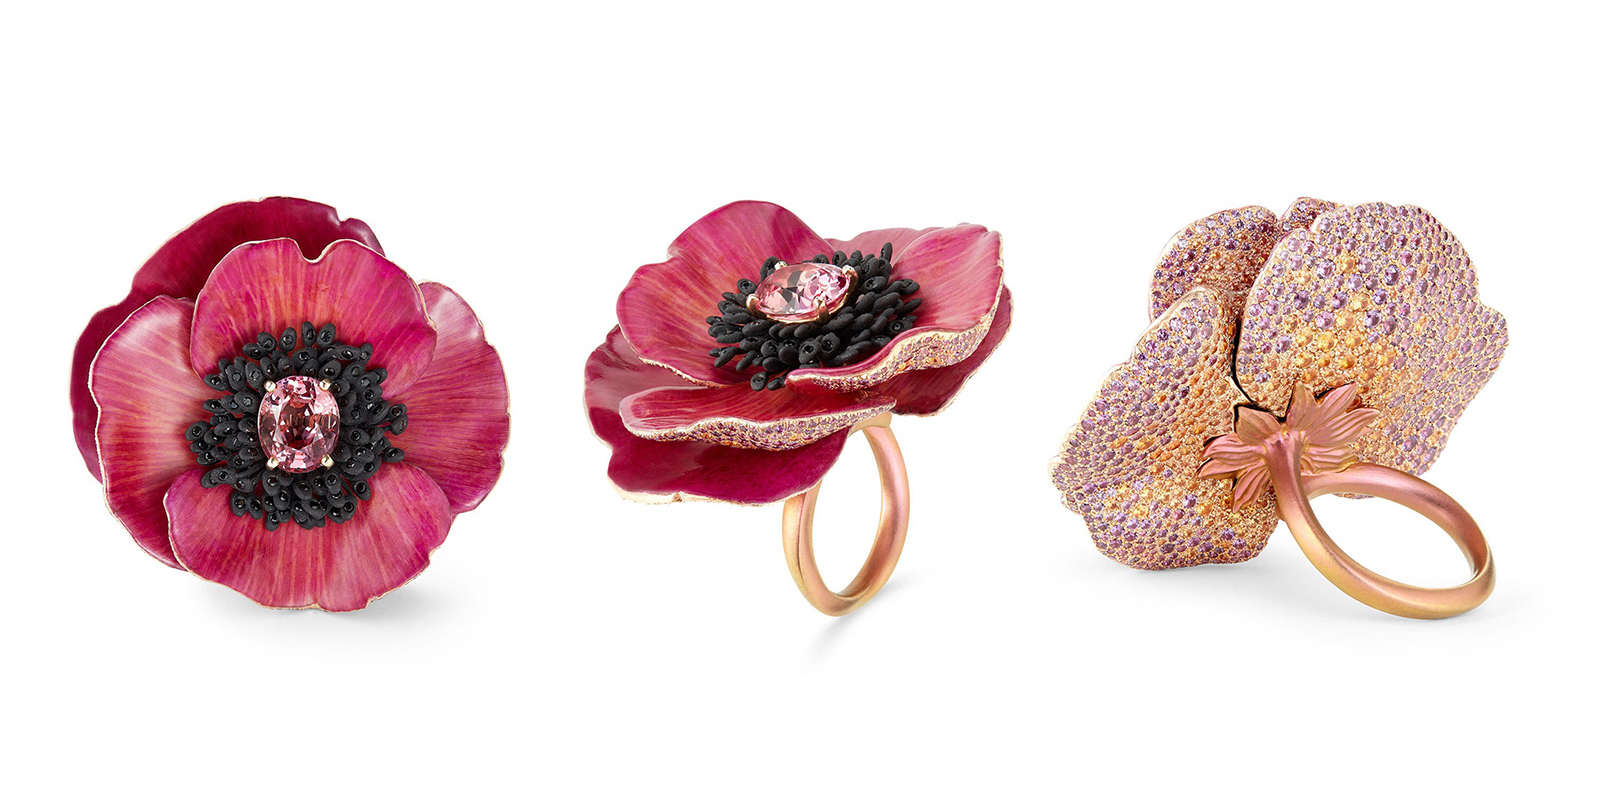 Boucheron 'Eternal Flowers' collection 'Pivione Avis Varner' ring with 4.16ct Padparadscha sapphire, spinels, yellow and violet sapphires in titanium